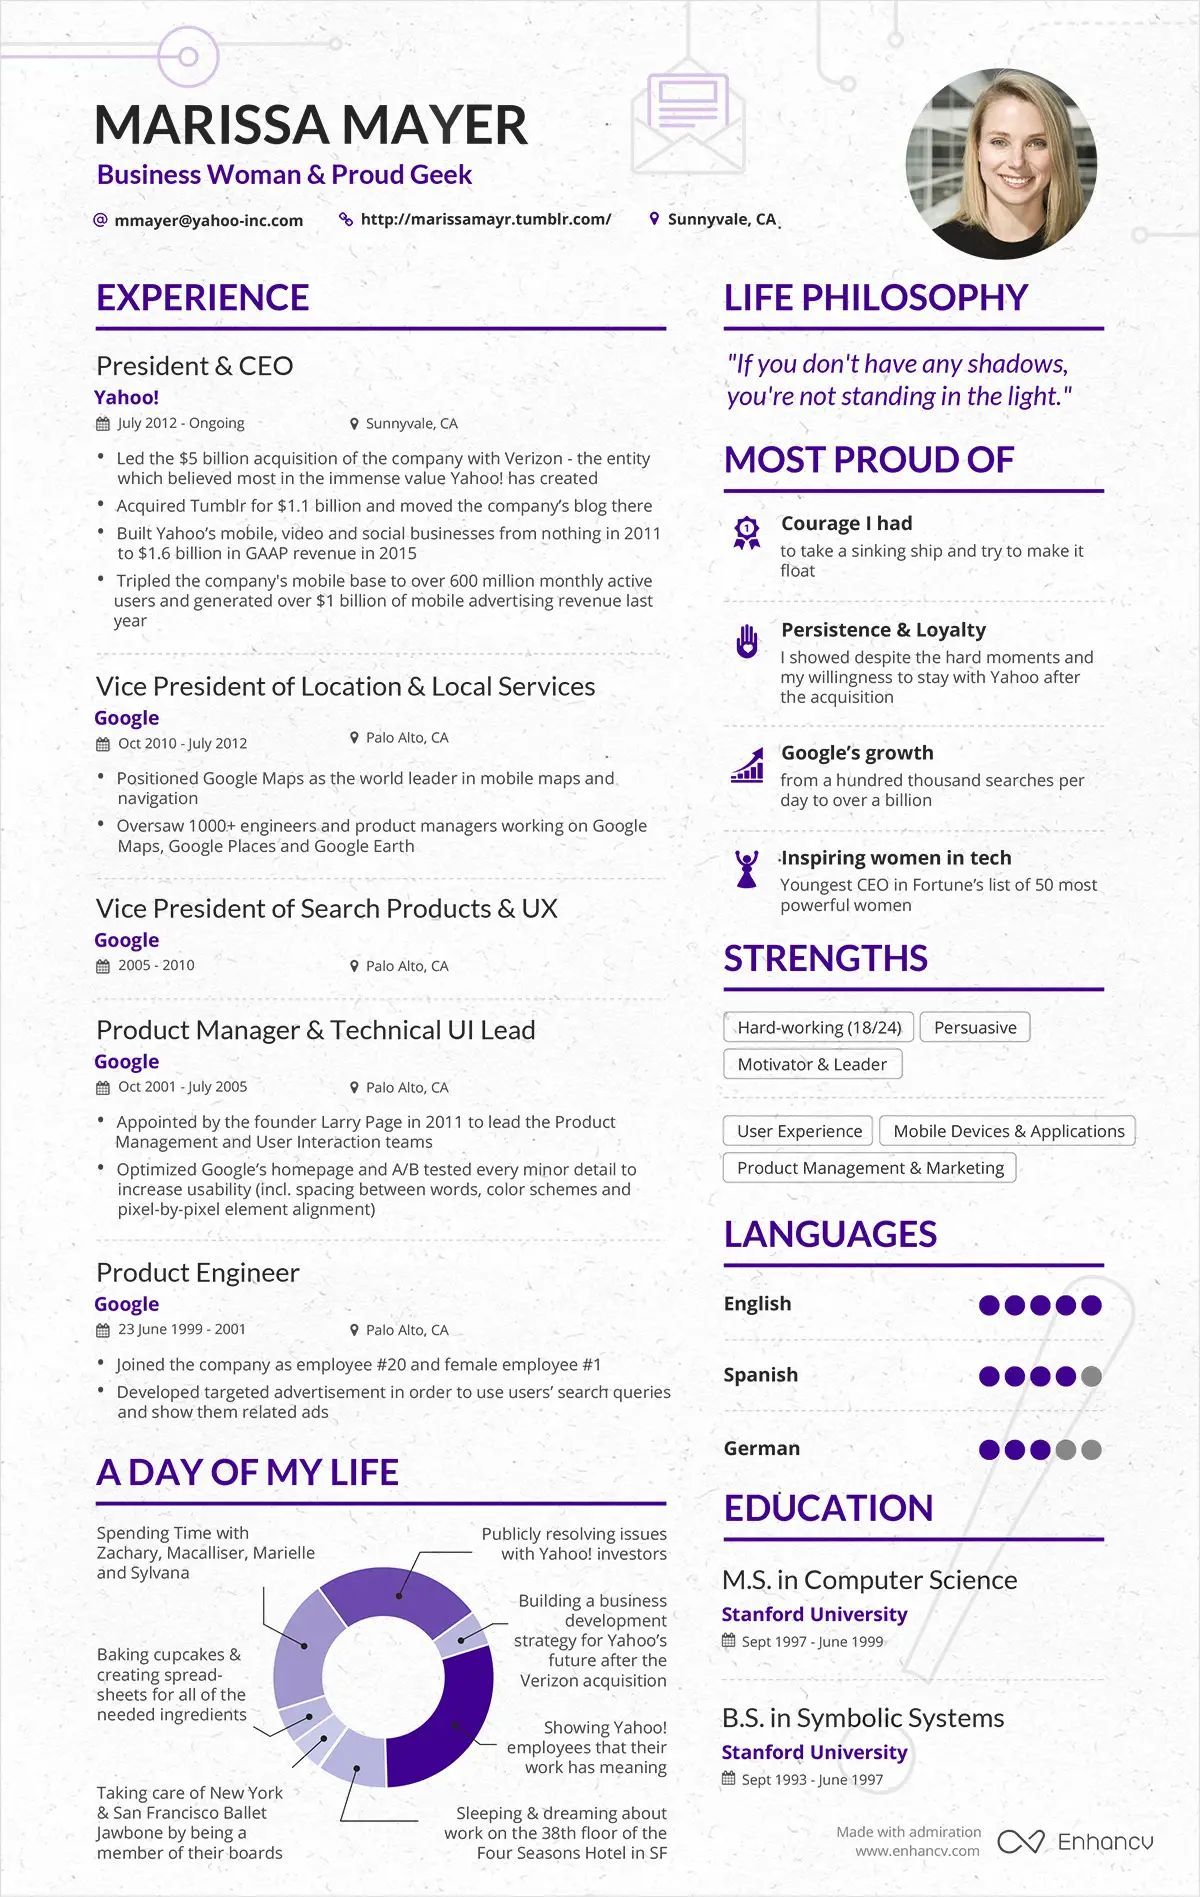 cv marissa mayer download